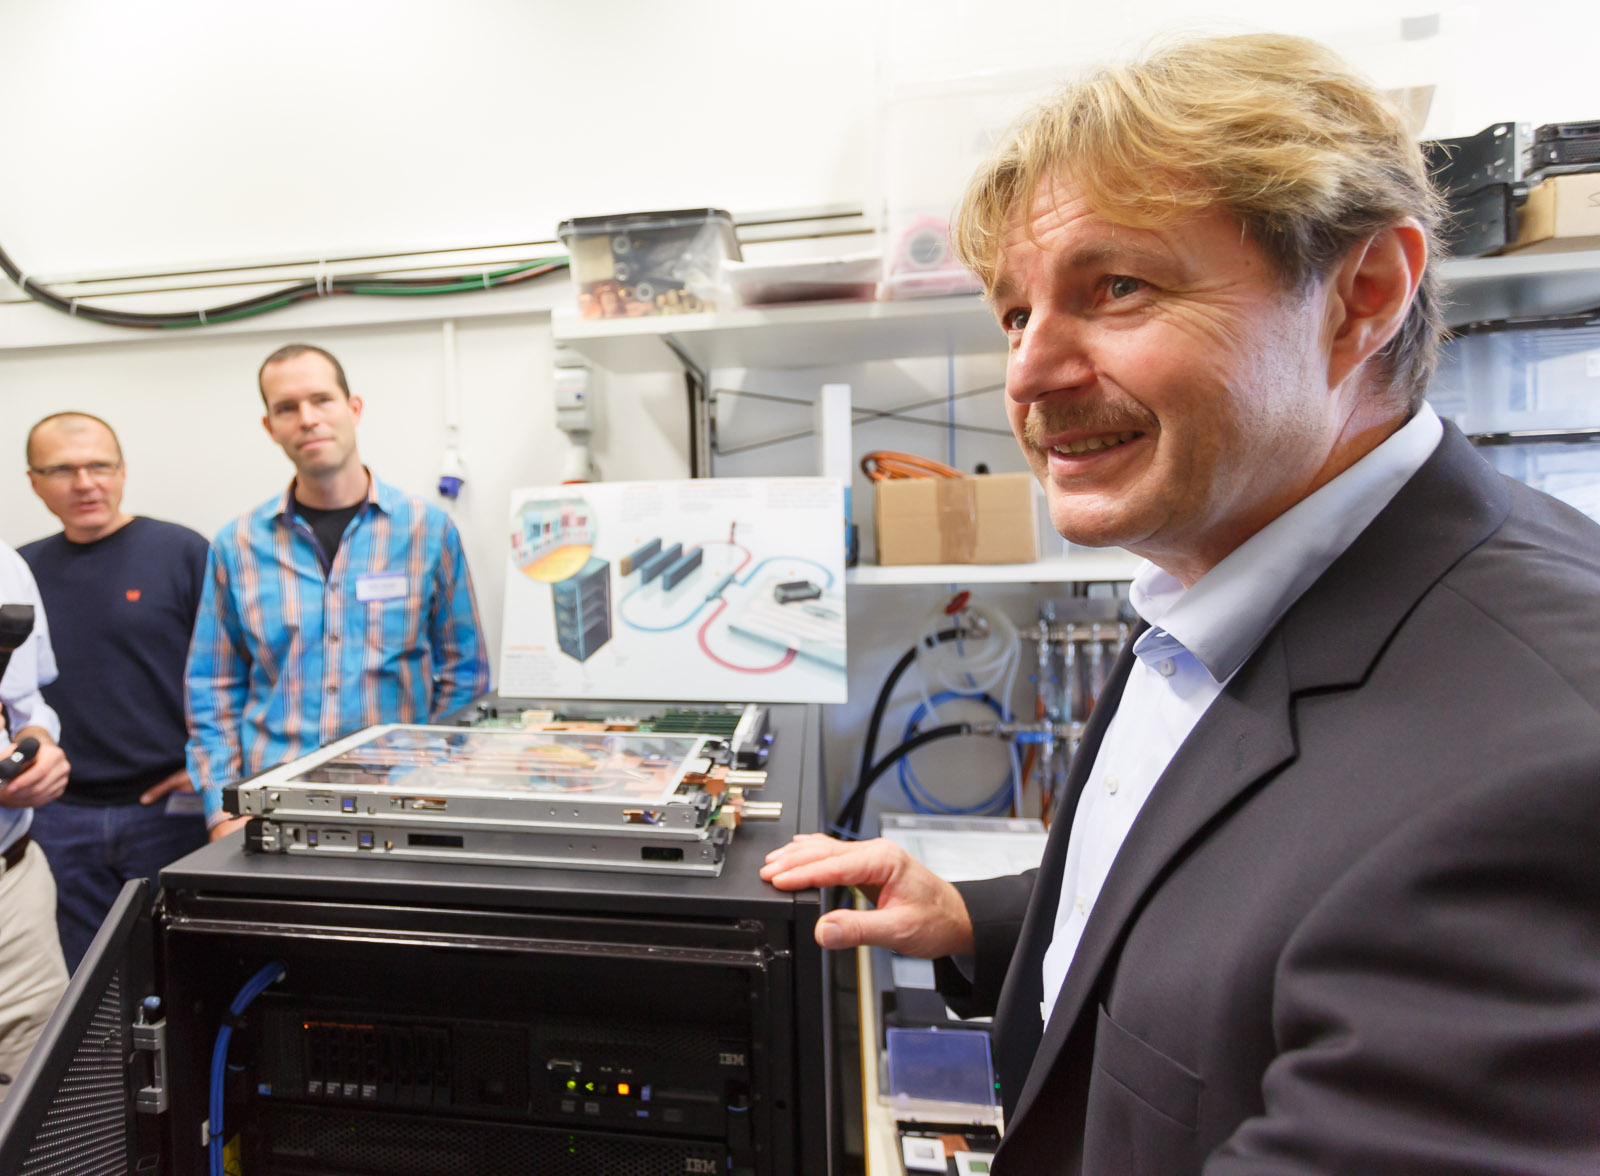 Bruno Michel describes Aquasar, an IBM Research prototype high-performance computing machine that uses unusually high-temperature liquid cooling.